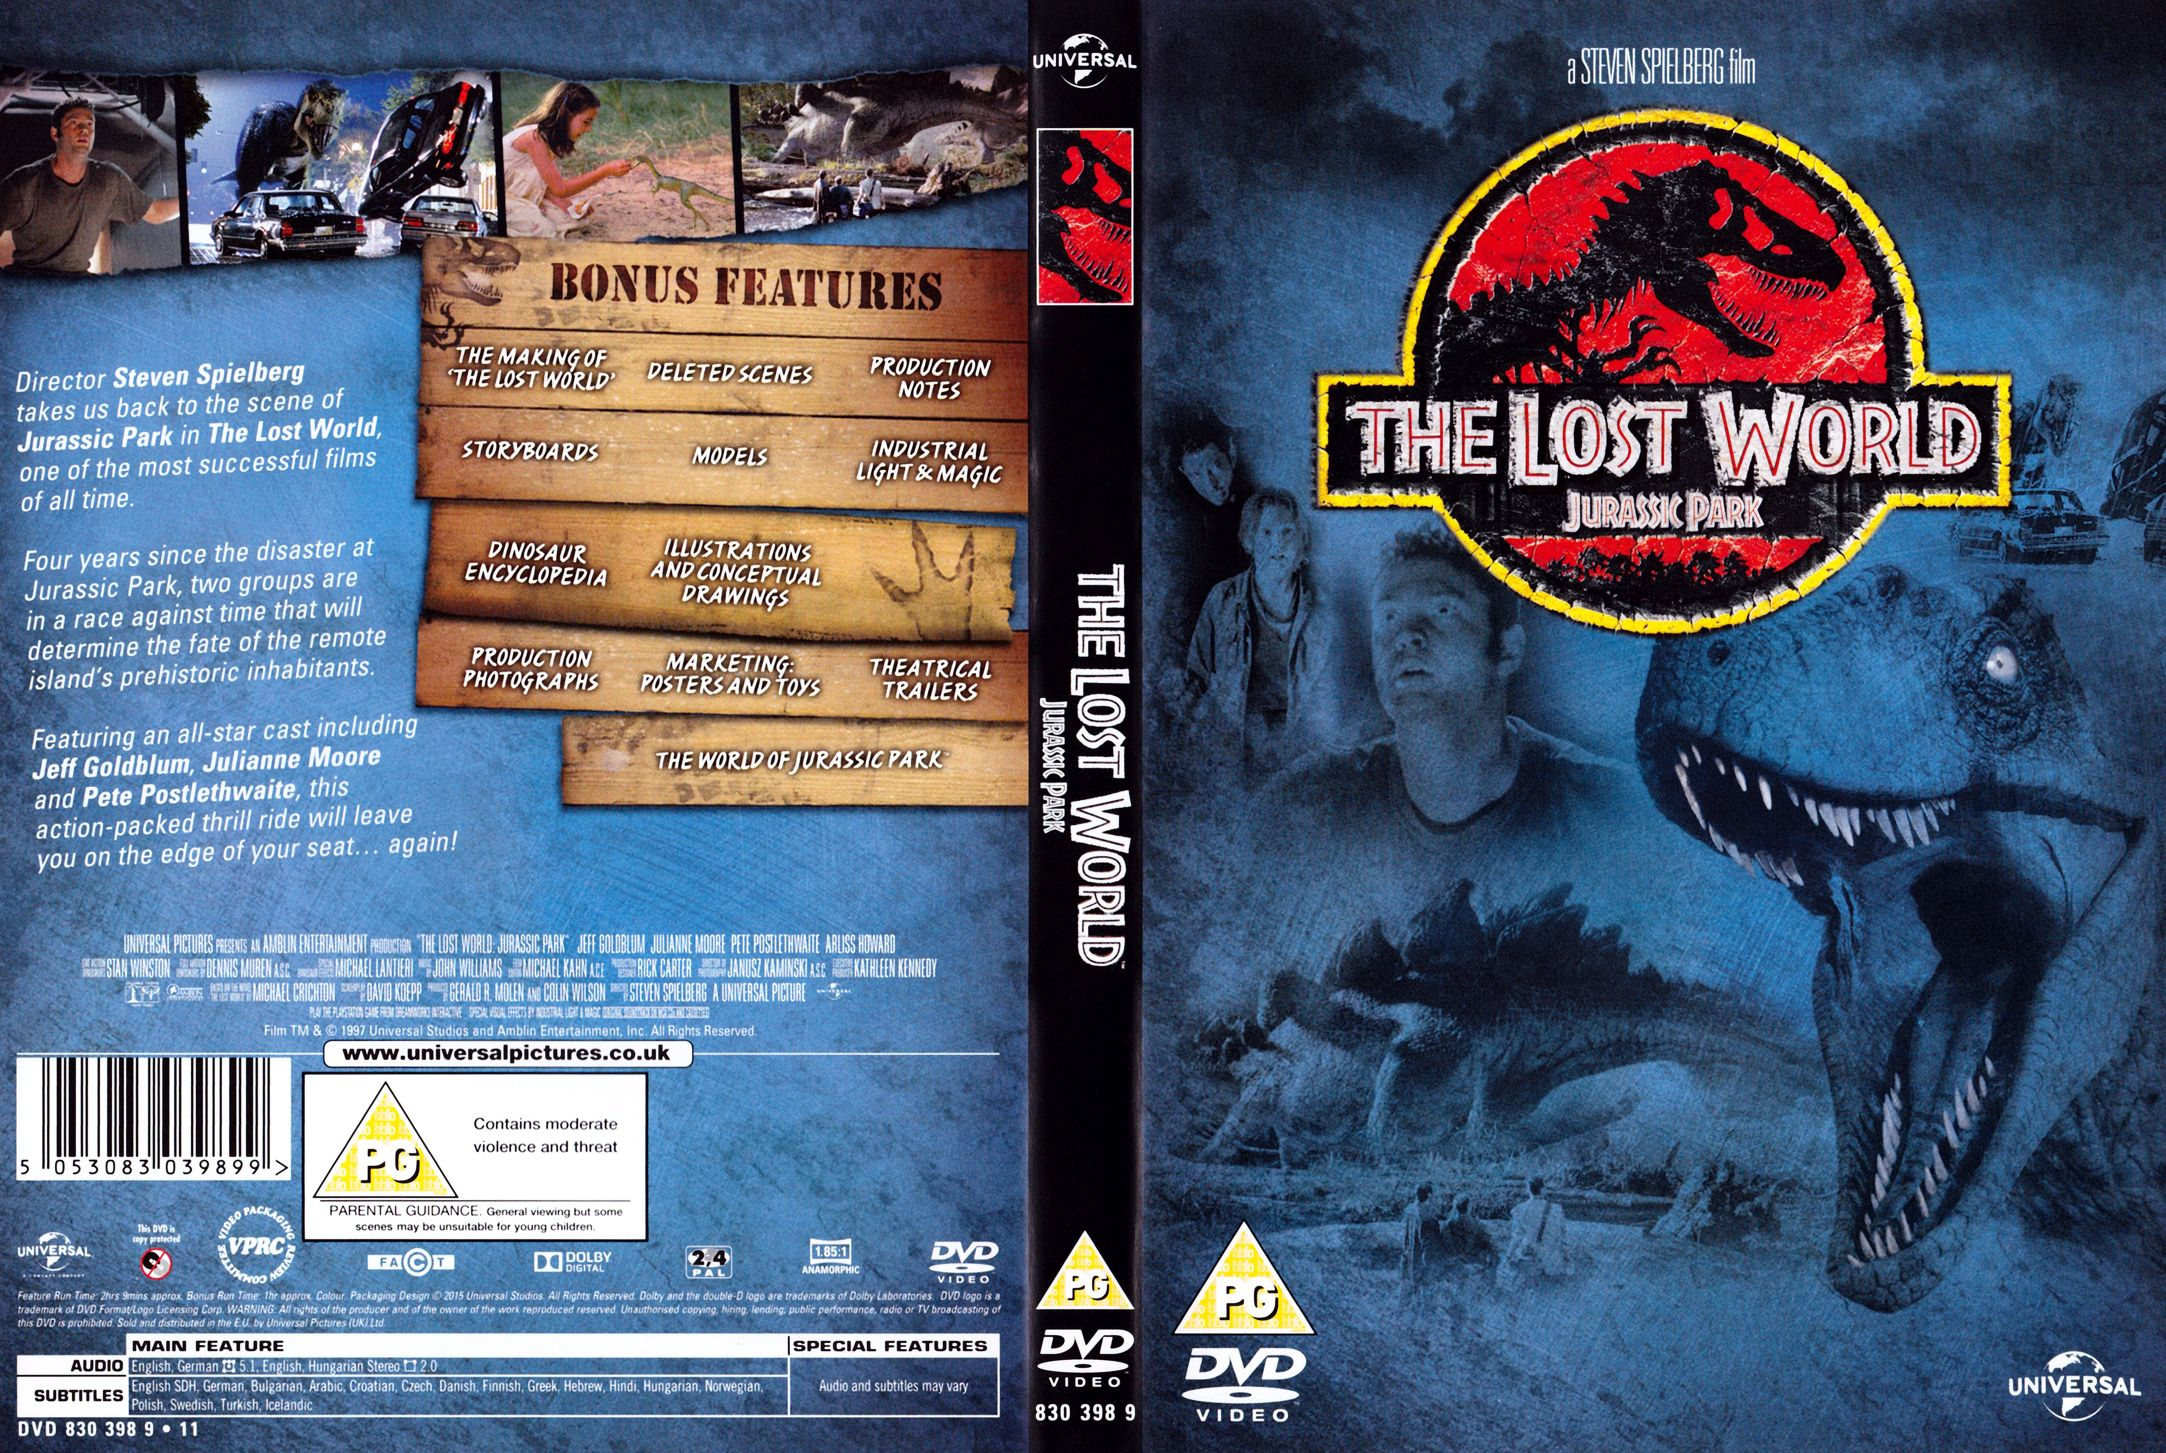 The Lost World Jurassic Park 1997 R2 Cover Dvd Covers Cover Century Over 500 000 Album Art Covers For Free